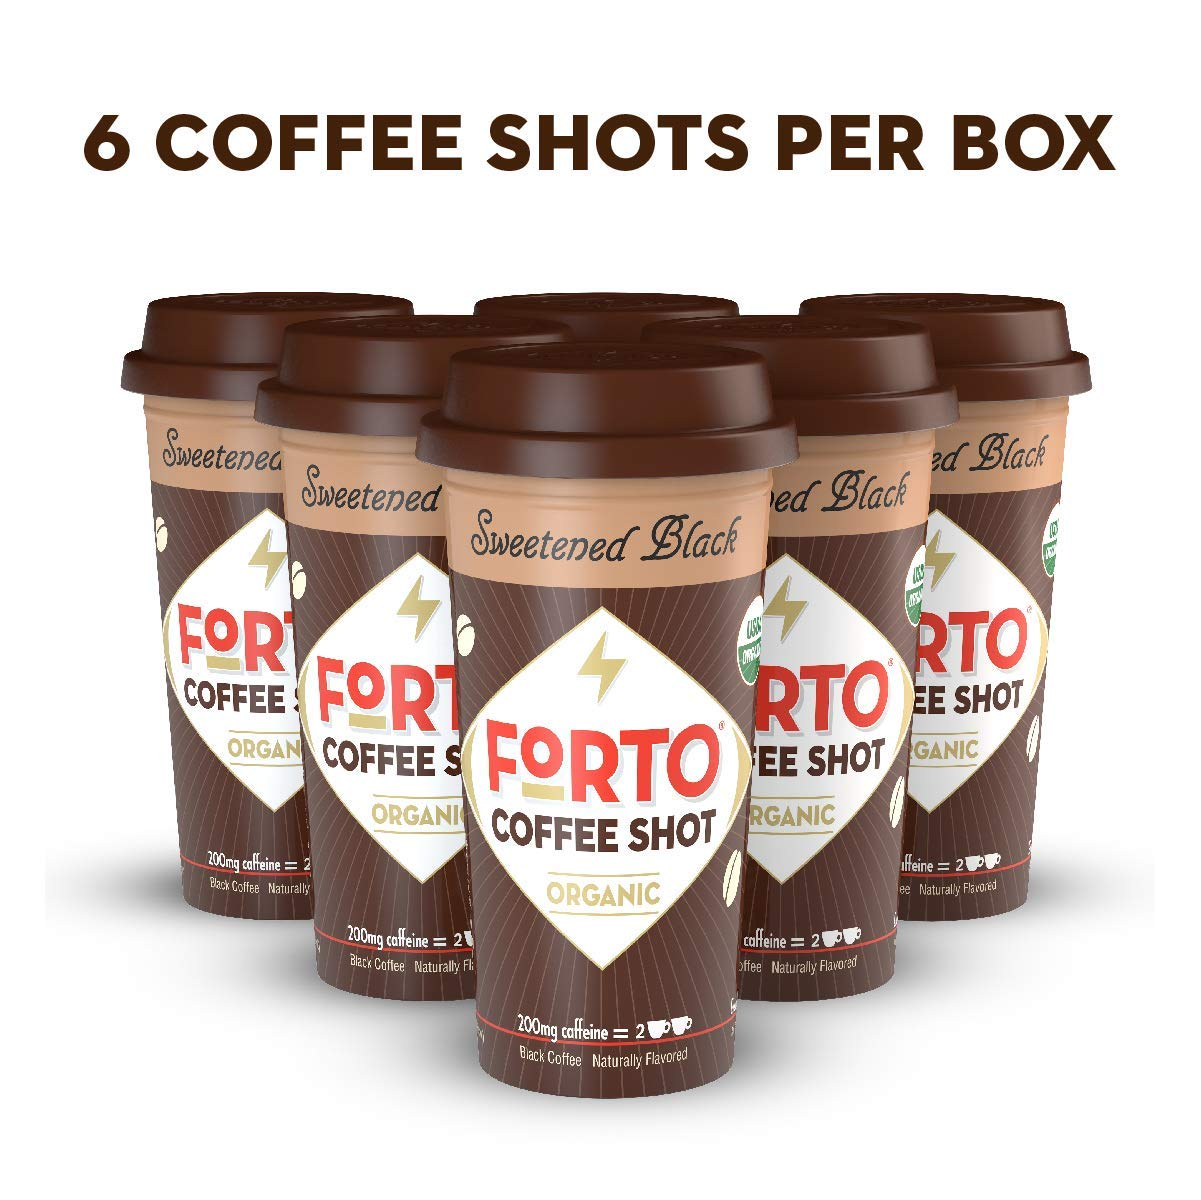 FORTO Coffee Shots - 200mg Caffeine, Chocolate Latte, Ready-to-Drink on the go, High Energy Cold Brew Coffee - Fast Coffee Energy Boost, (6 count) (Pack of 4)